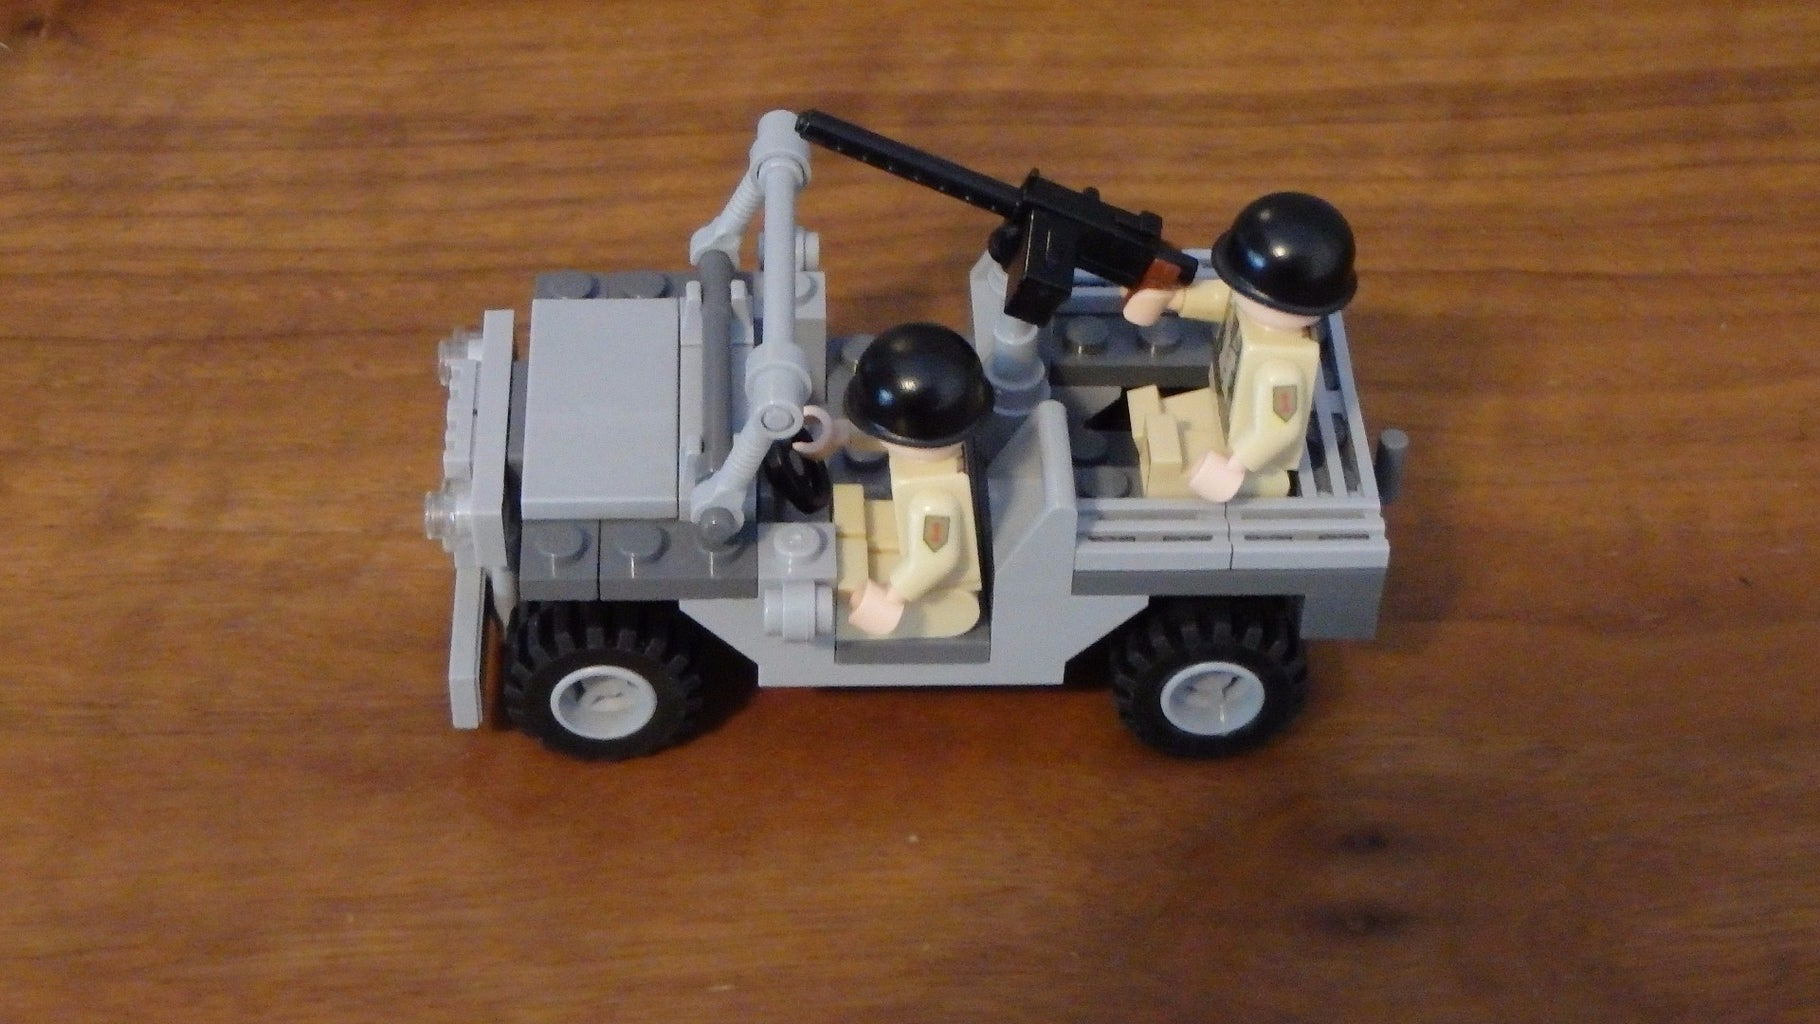 Creating the Jeep With Legos